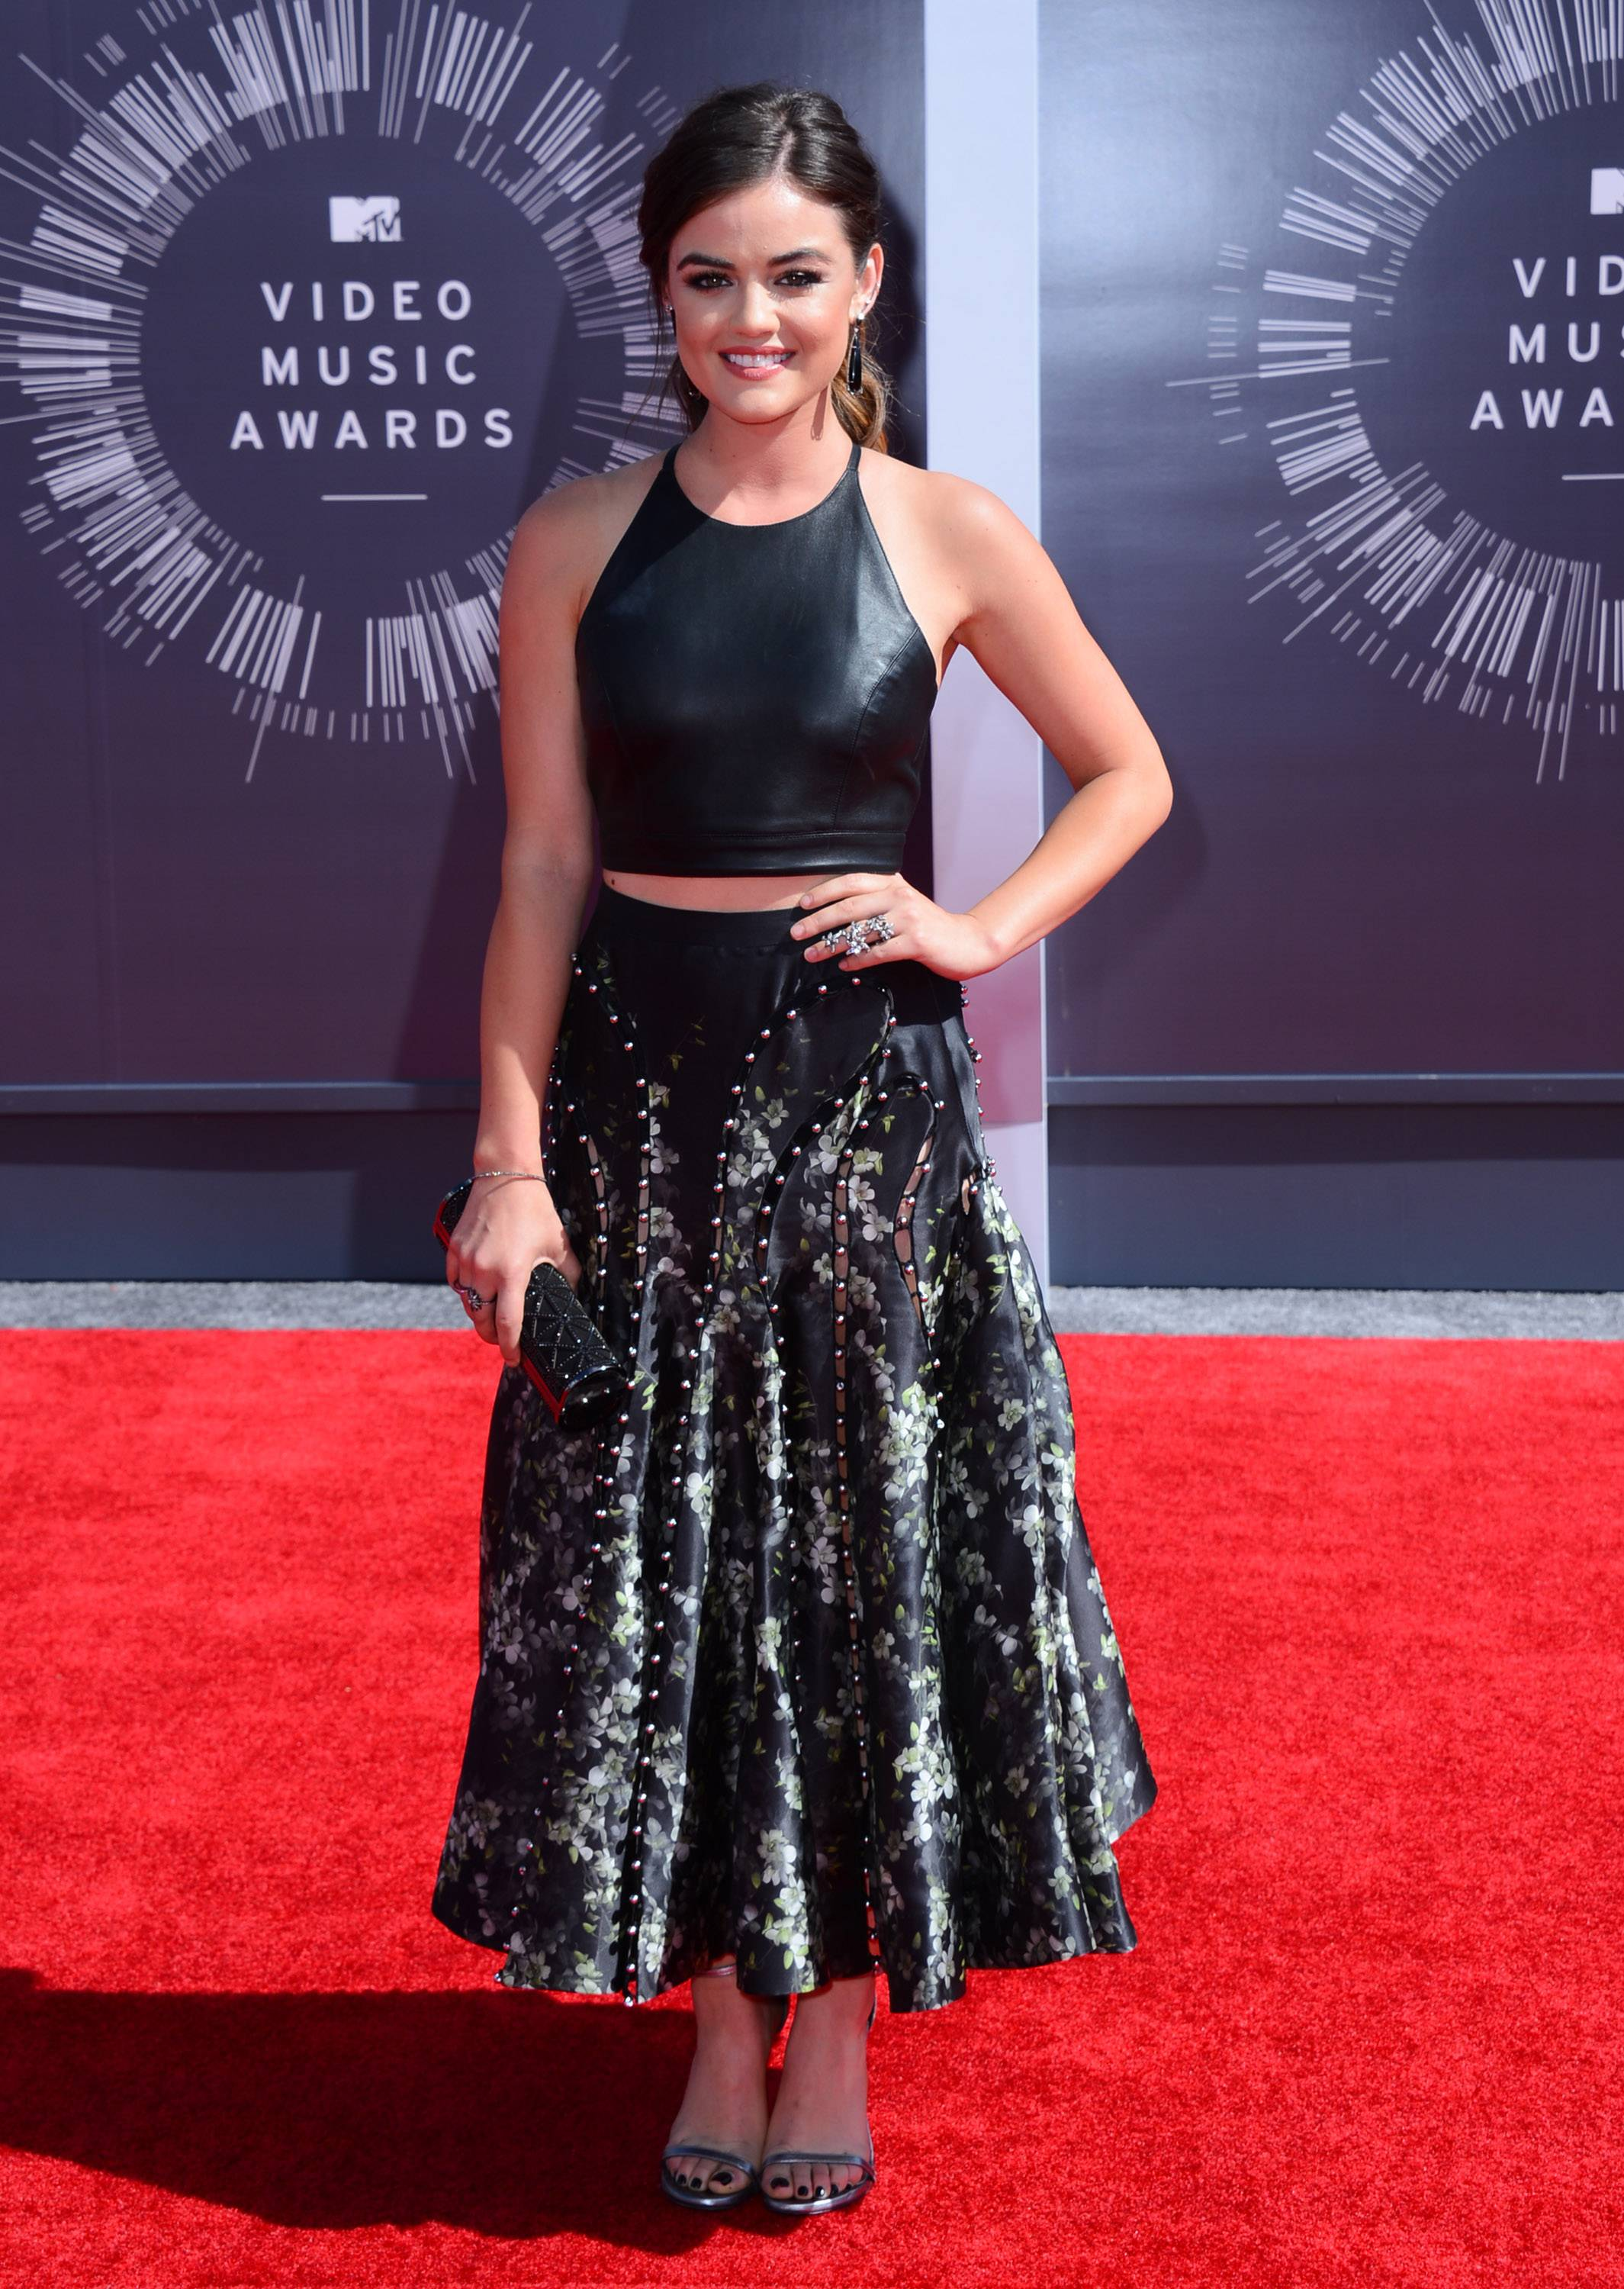 Pre-show host actress and singer Lucy Hale arrives at the MTV Video Music Awards at The Forum on Sunday in Inglewood, Calif.